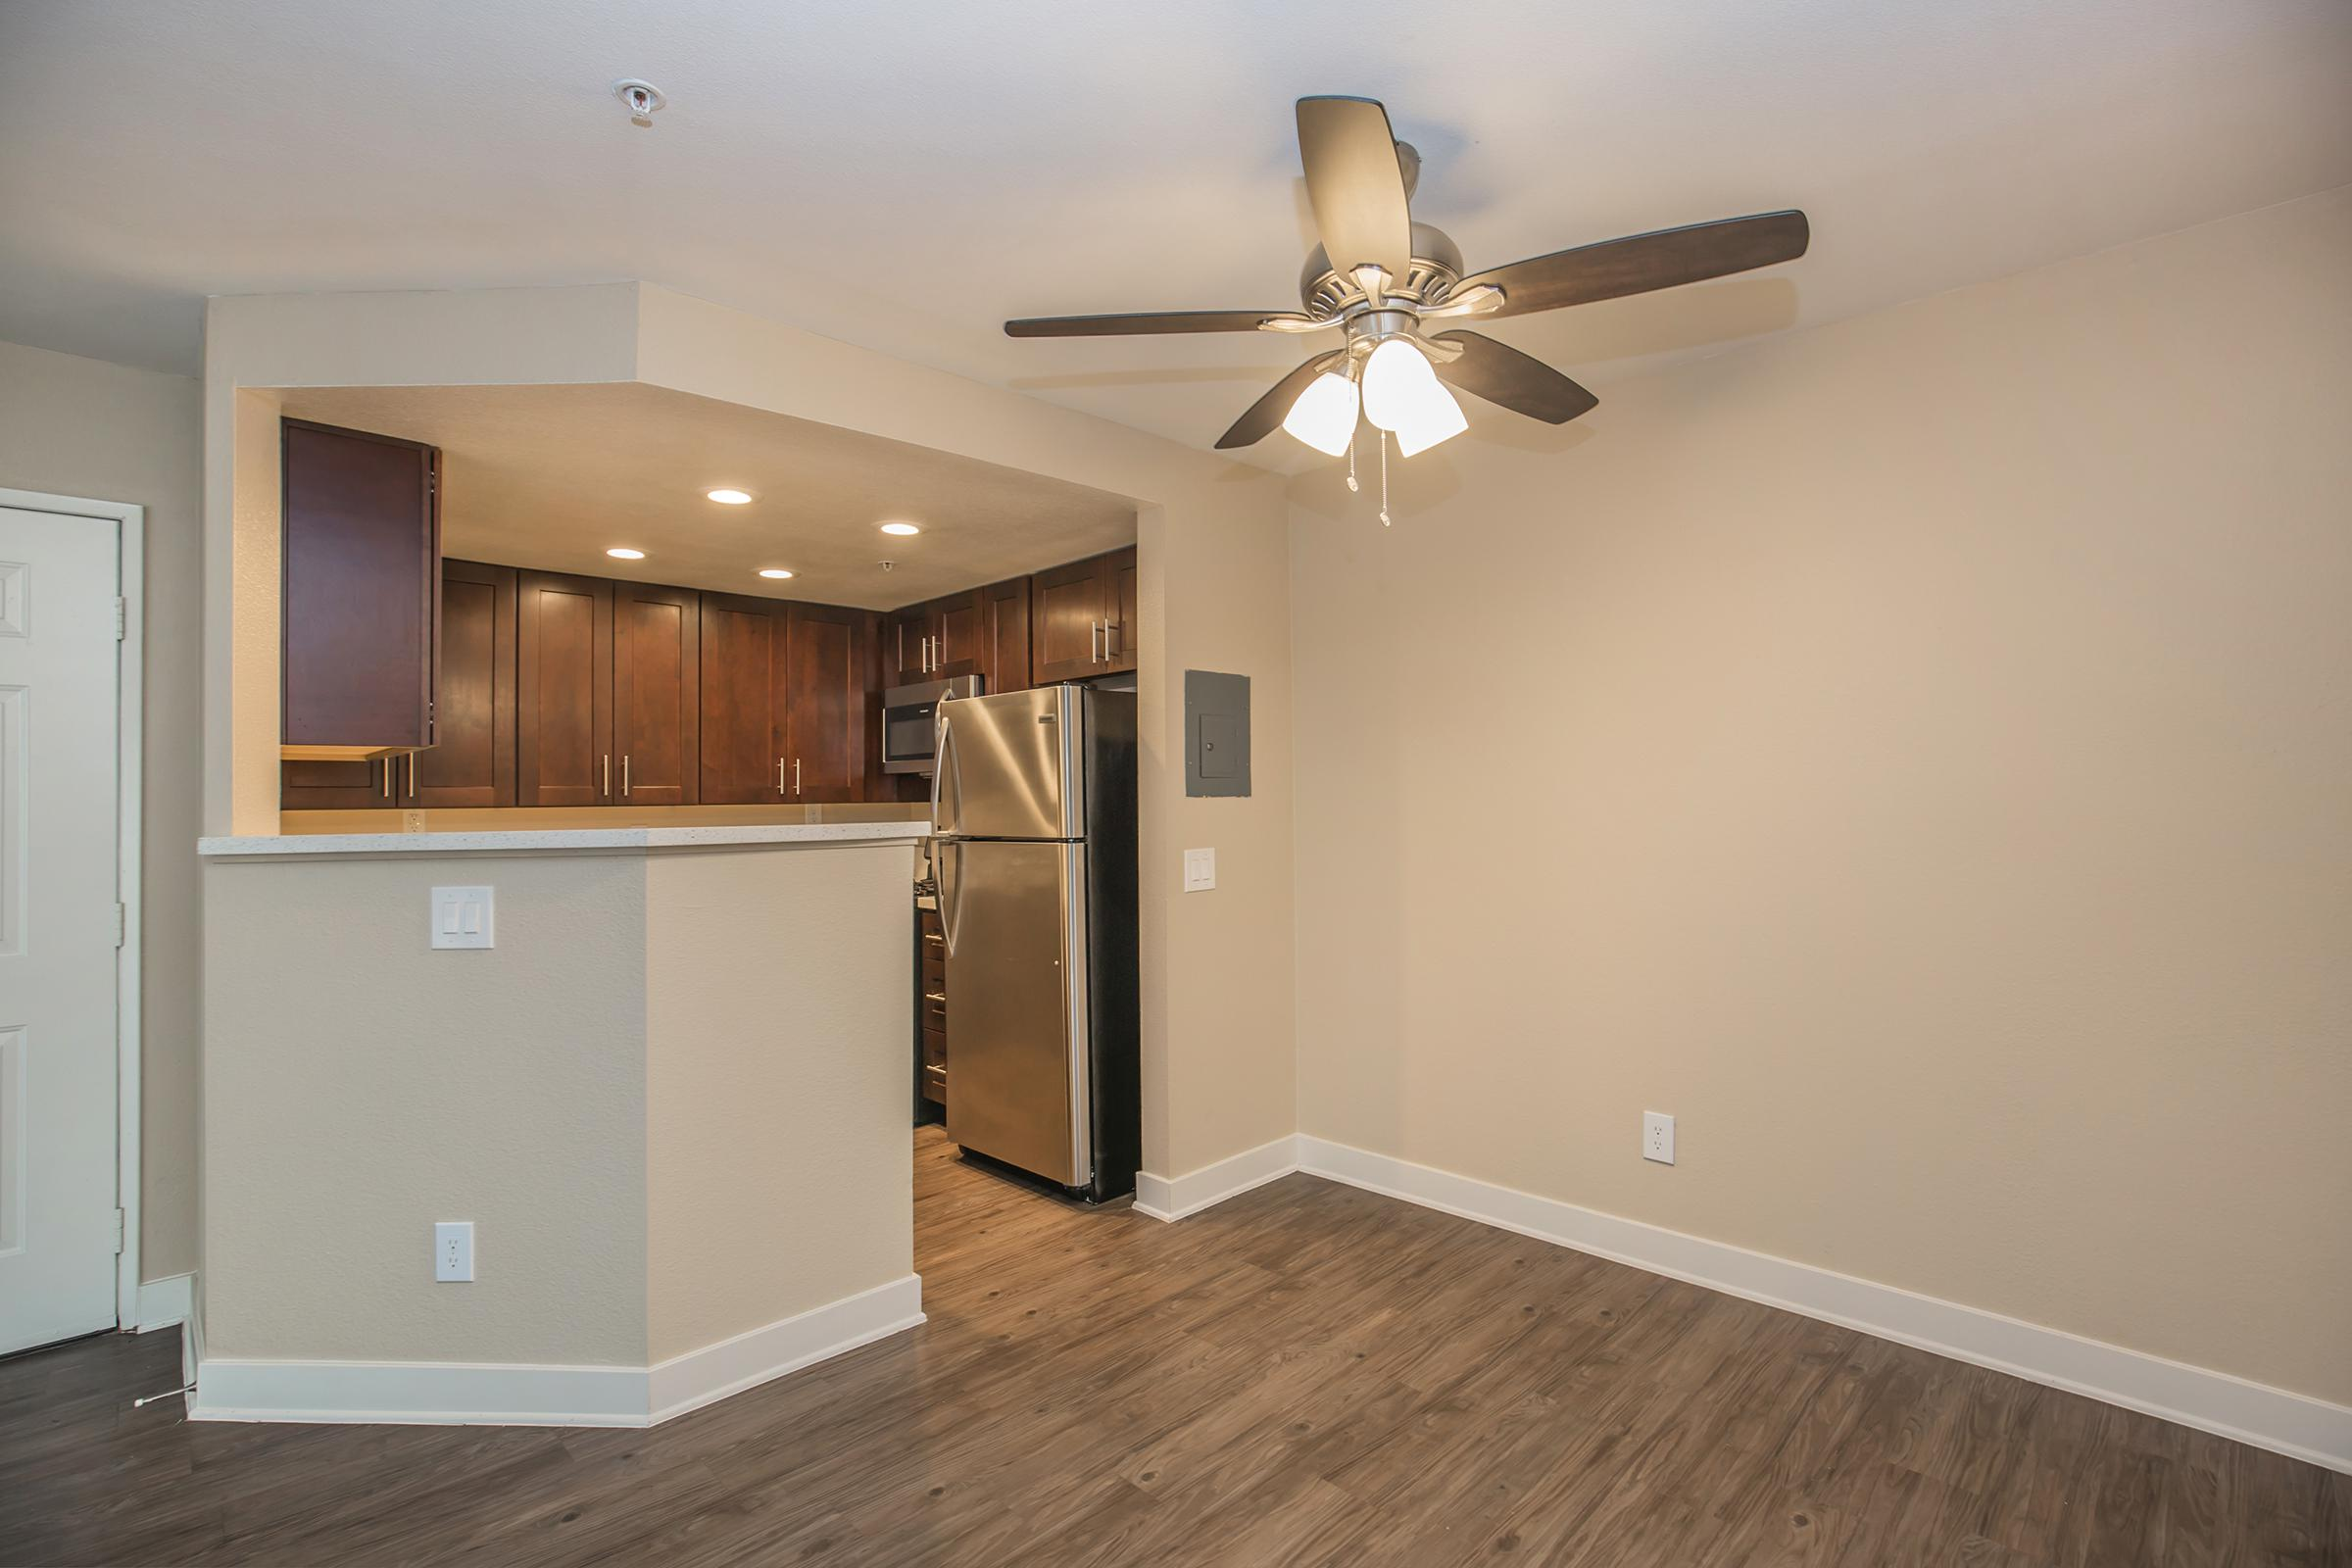 Unfurnished dining room with kitchen